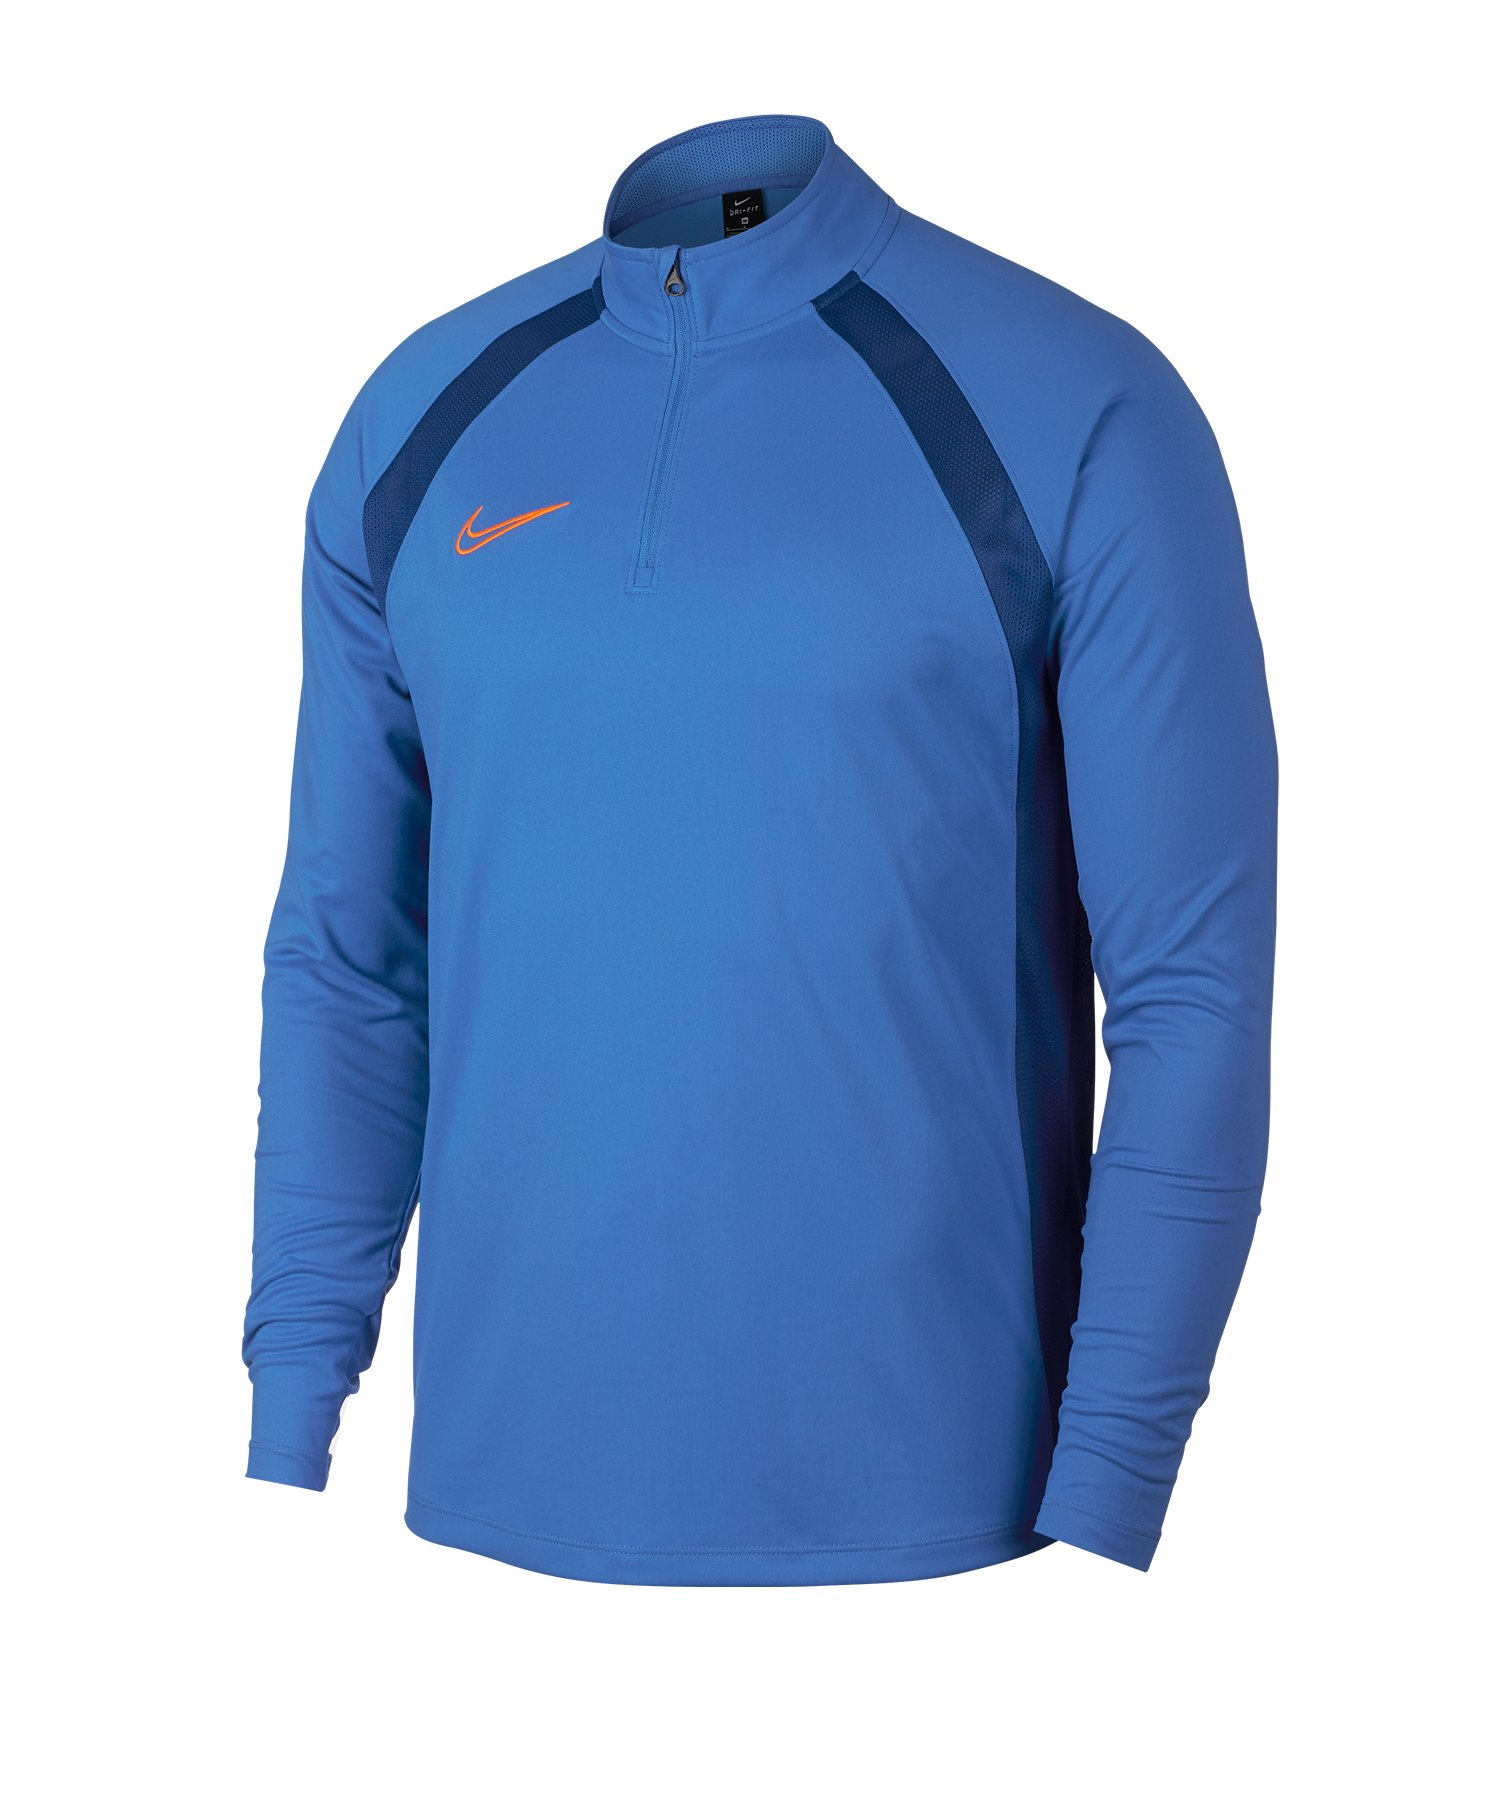 Nike Dri-FIT Academy Drill Top Blau F402 - blau